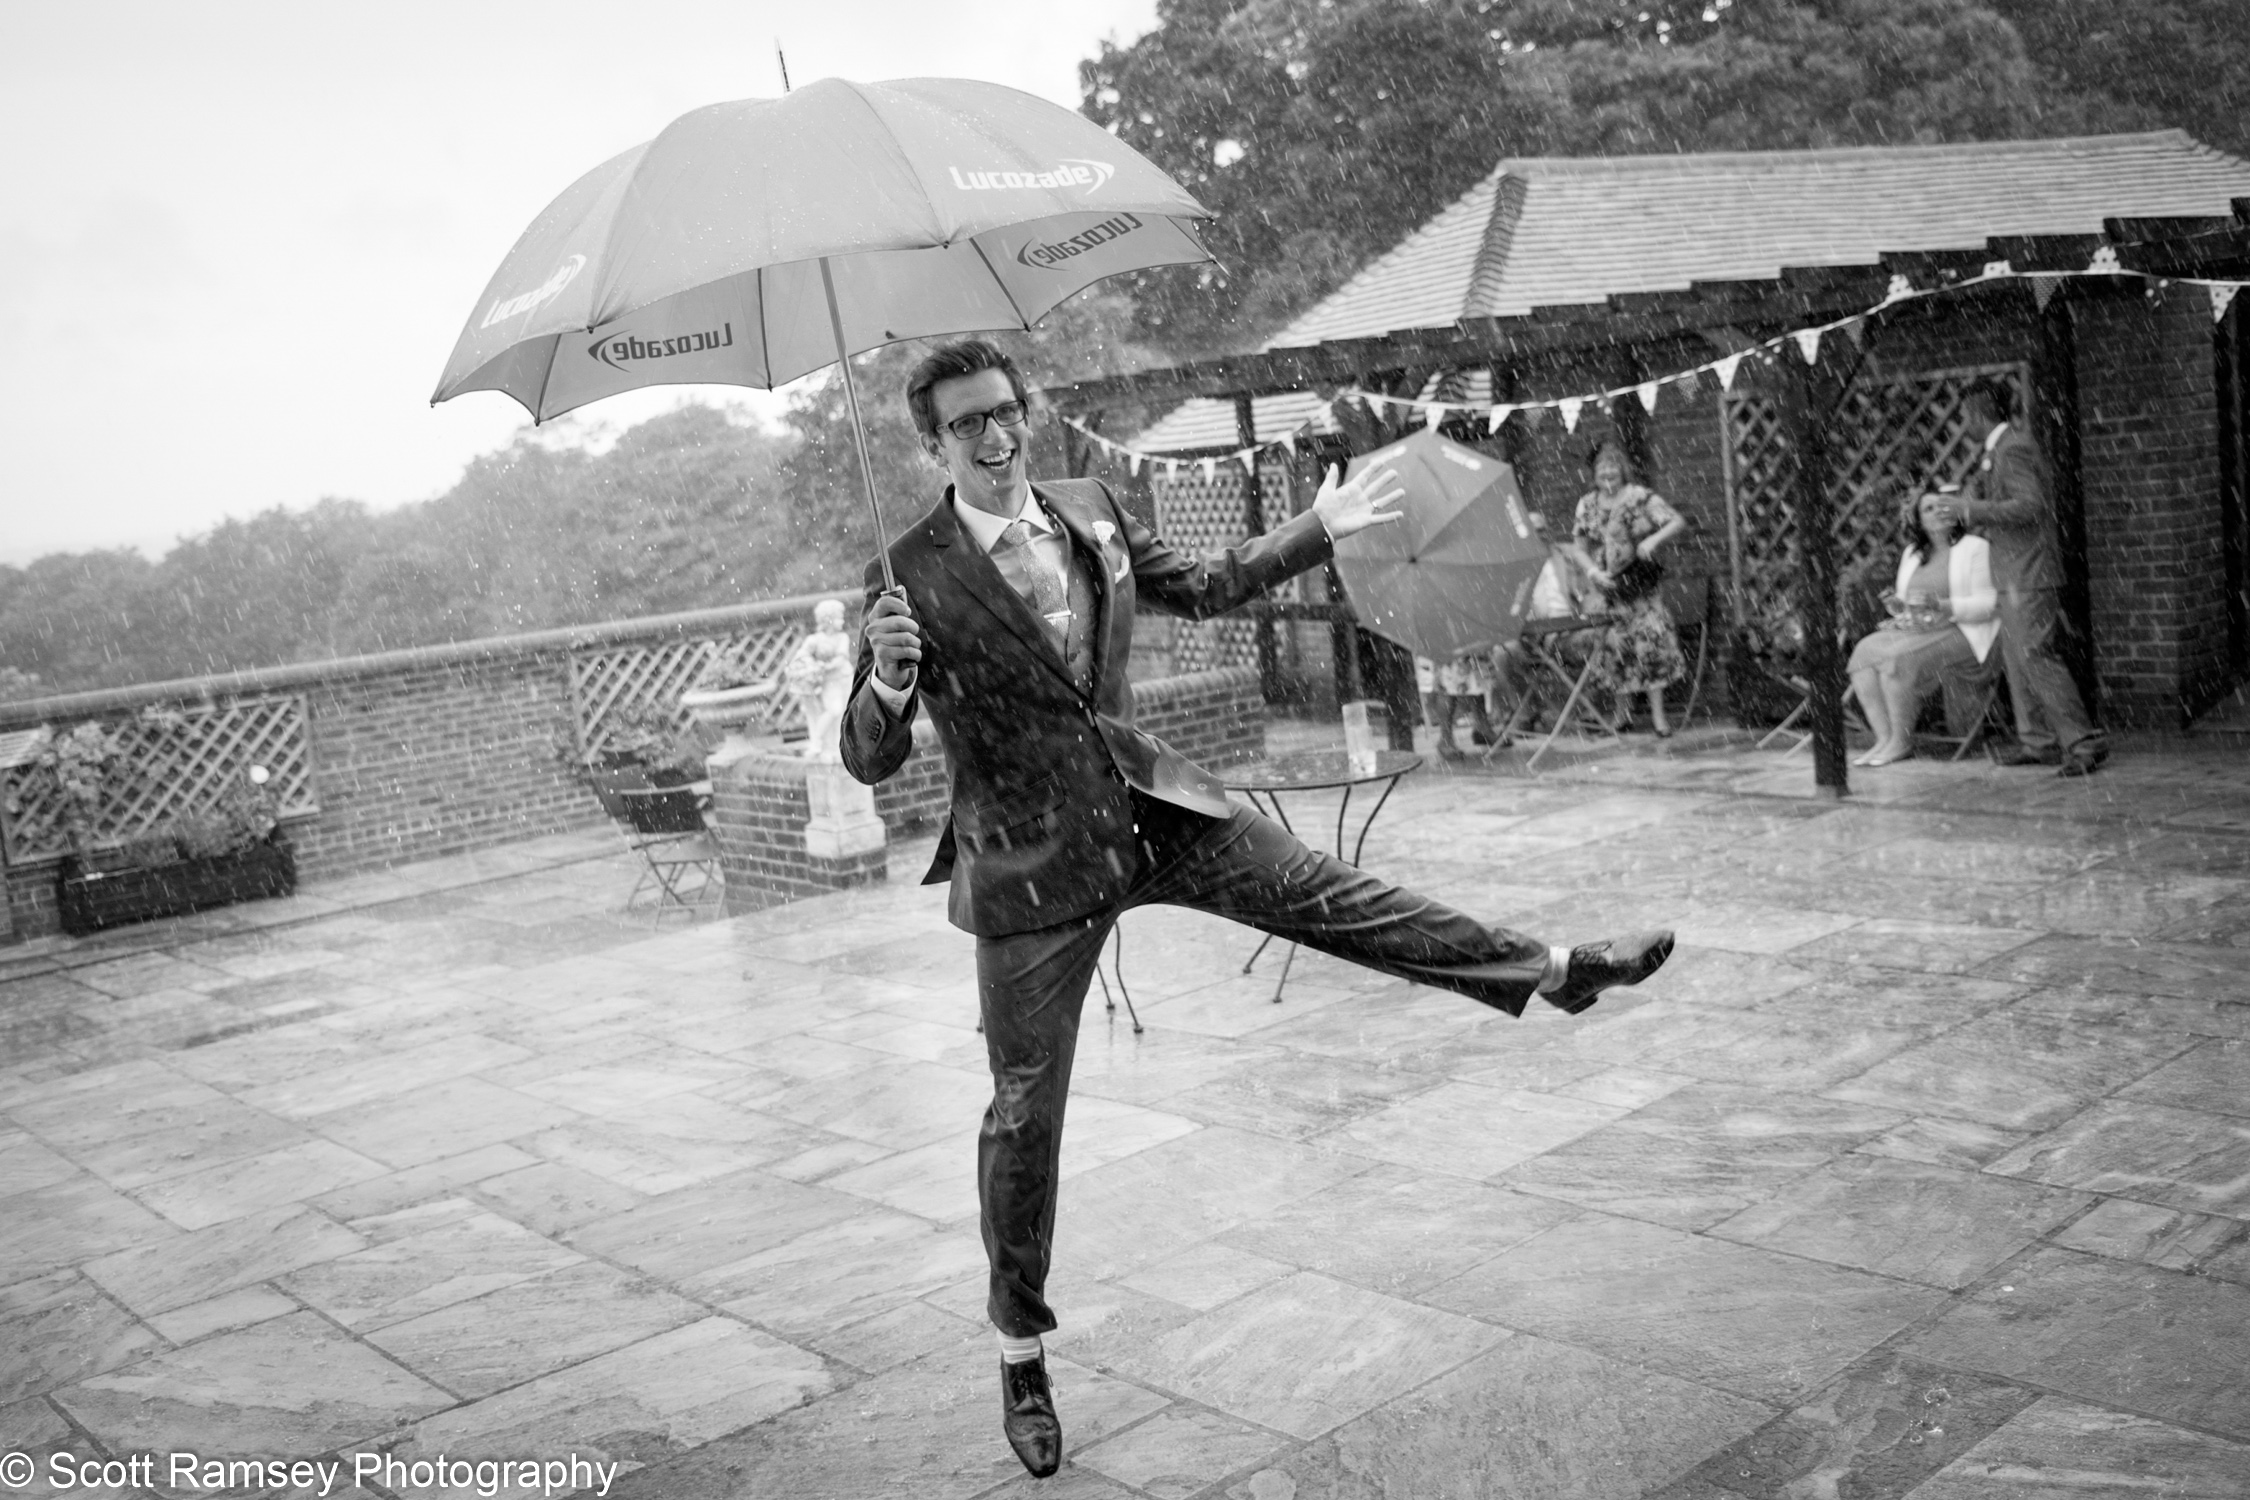 A groom dances in the rain during his wedding at Blackstock Farm Barn in East Sussex.